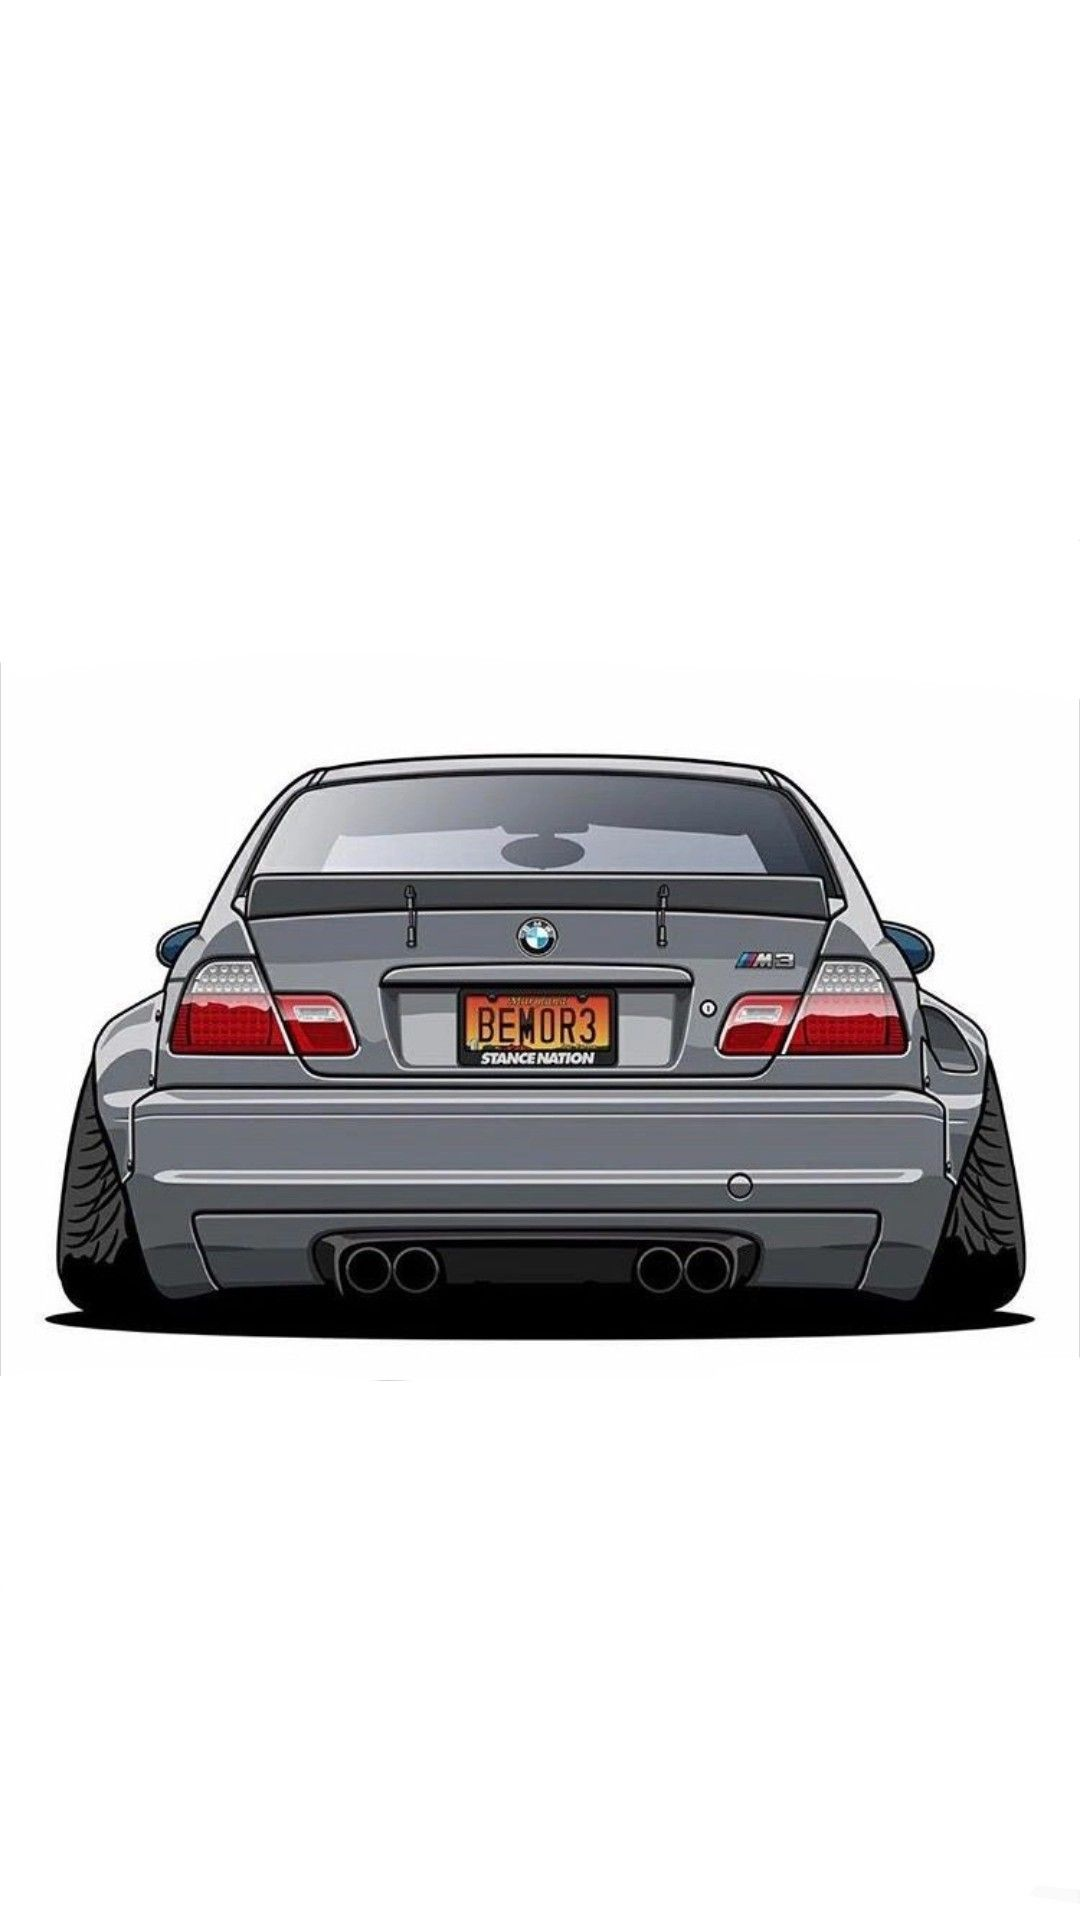 Otomotive Otomotive Bmw Wallpapers Cars Tuner Cars